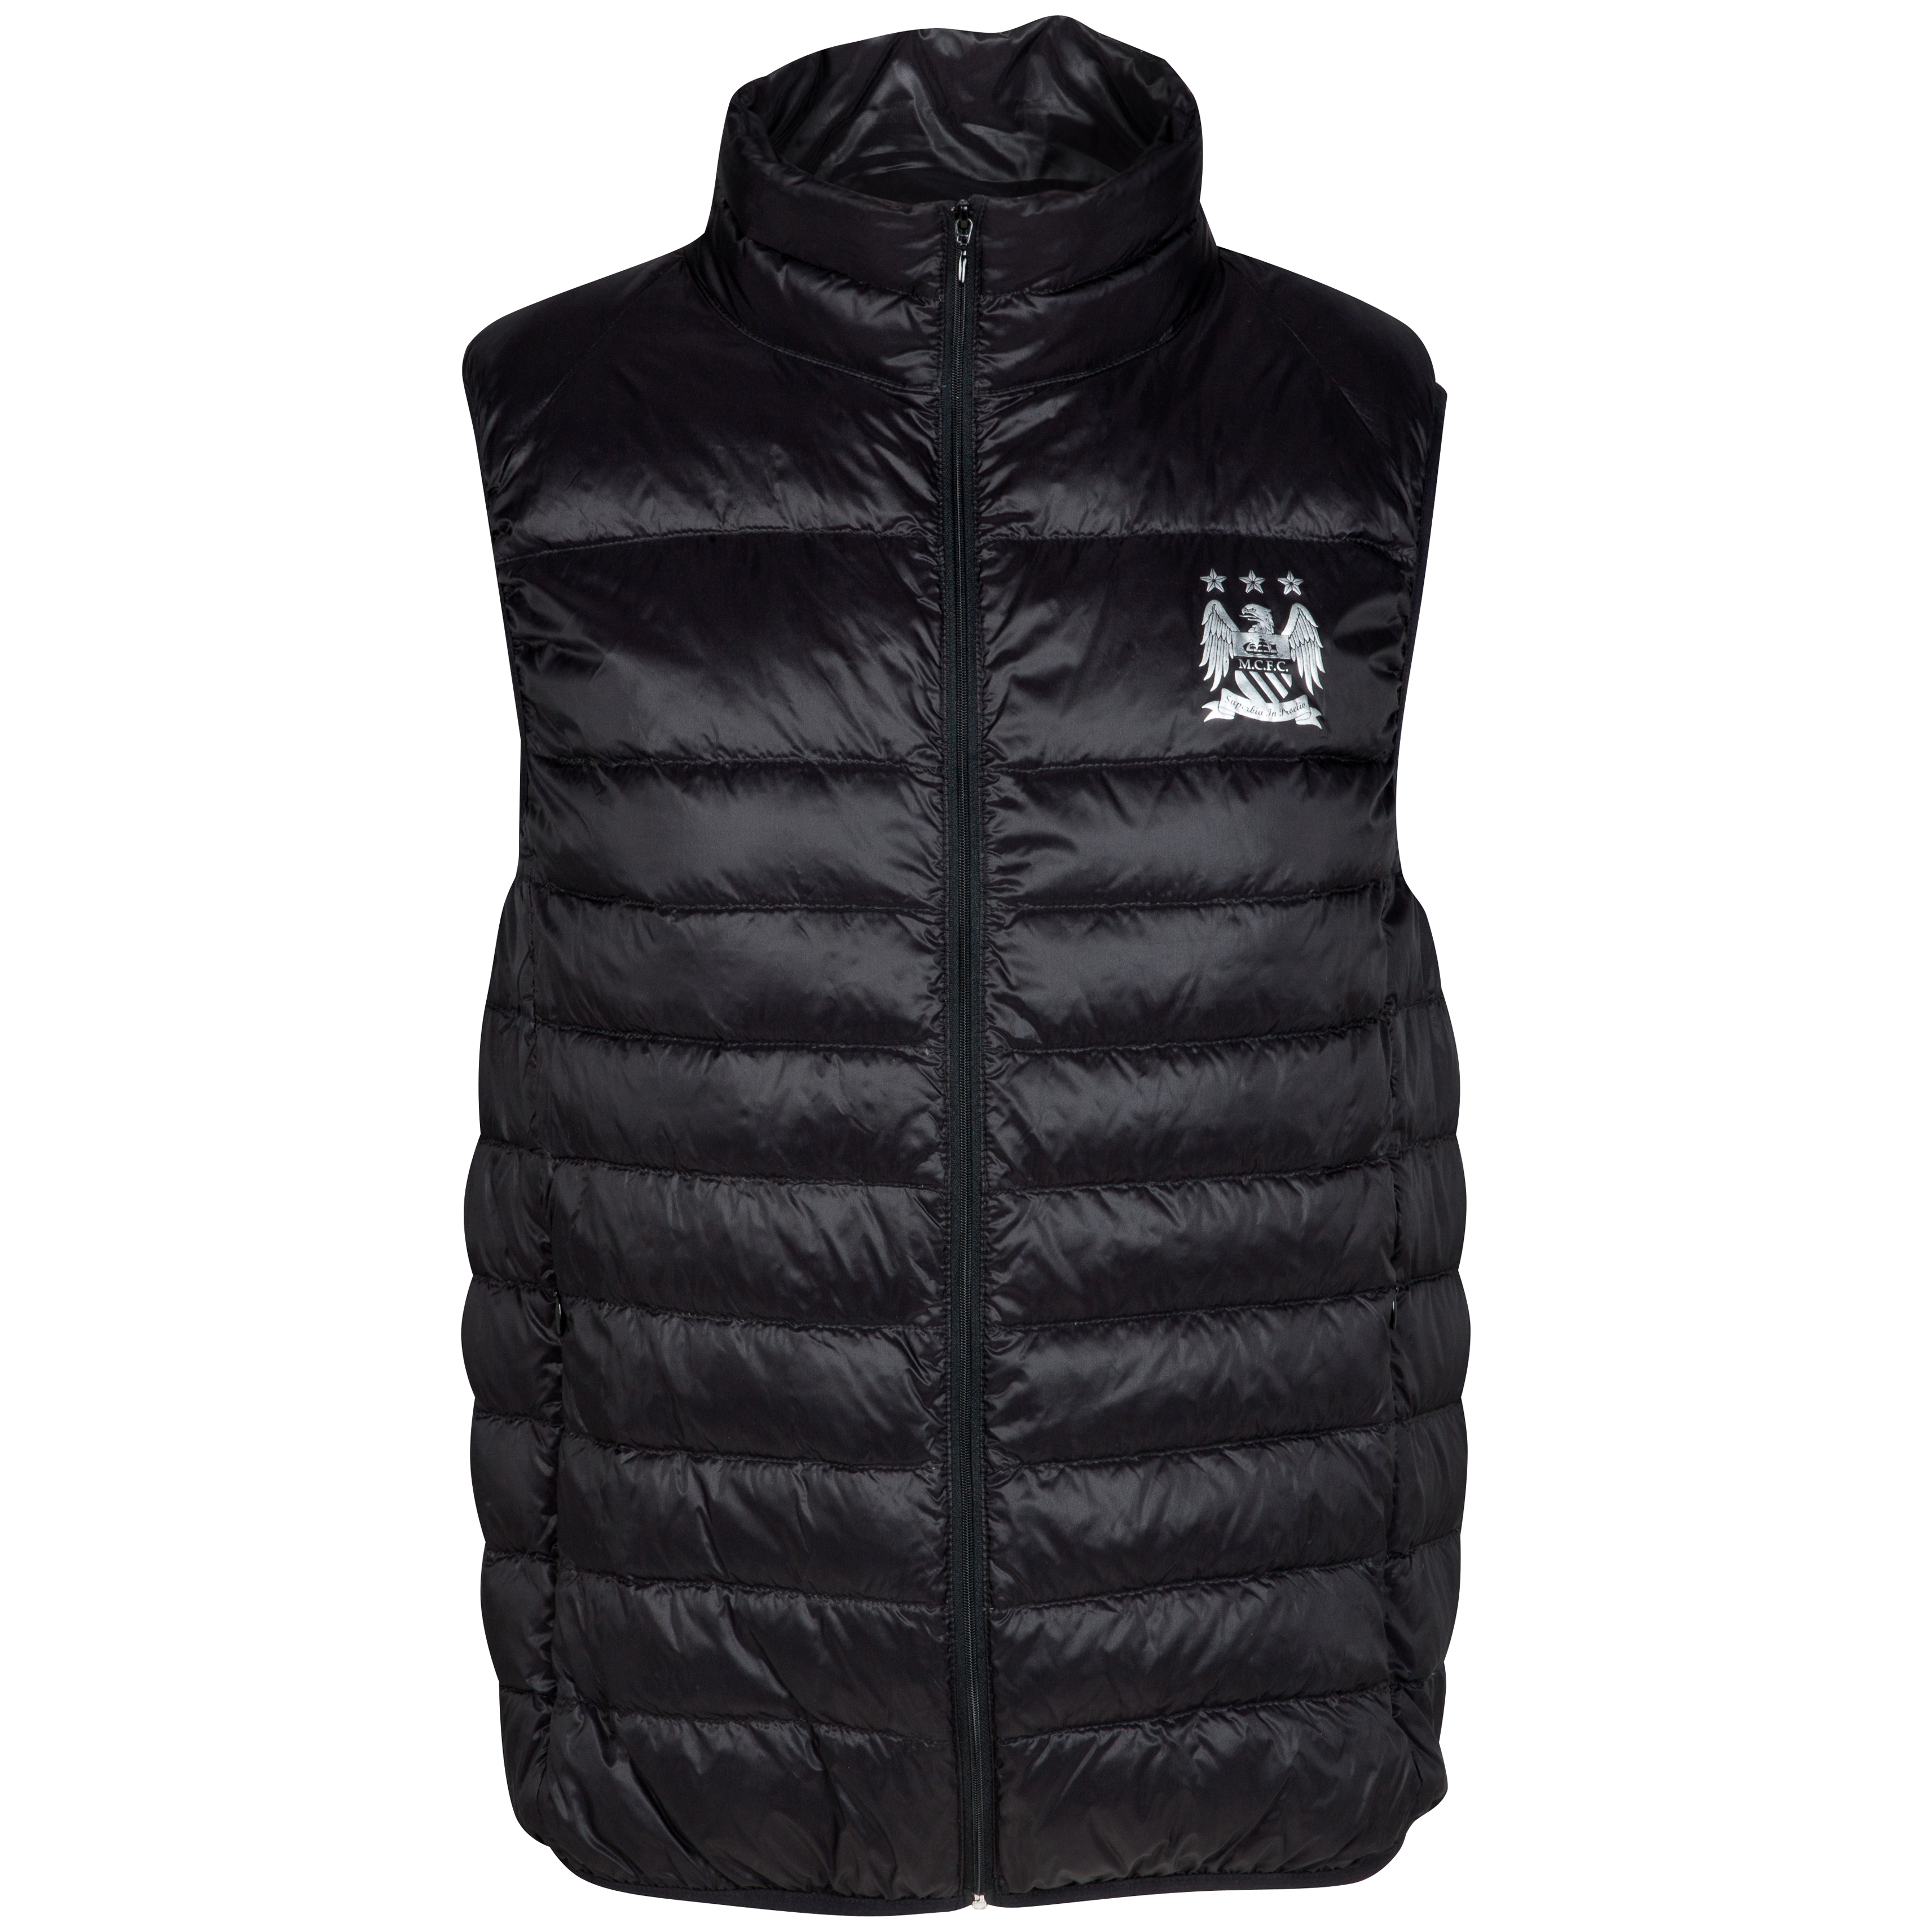 Manchester City Performance Ravine Gilet - Black